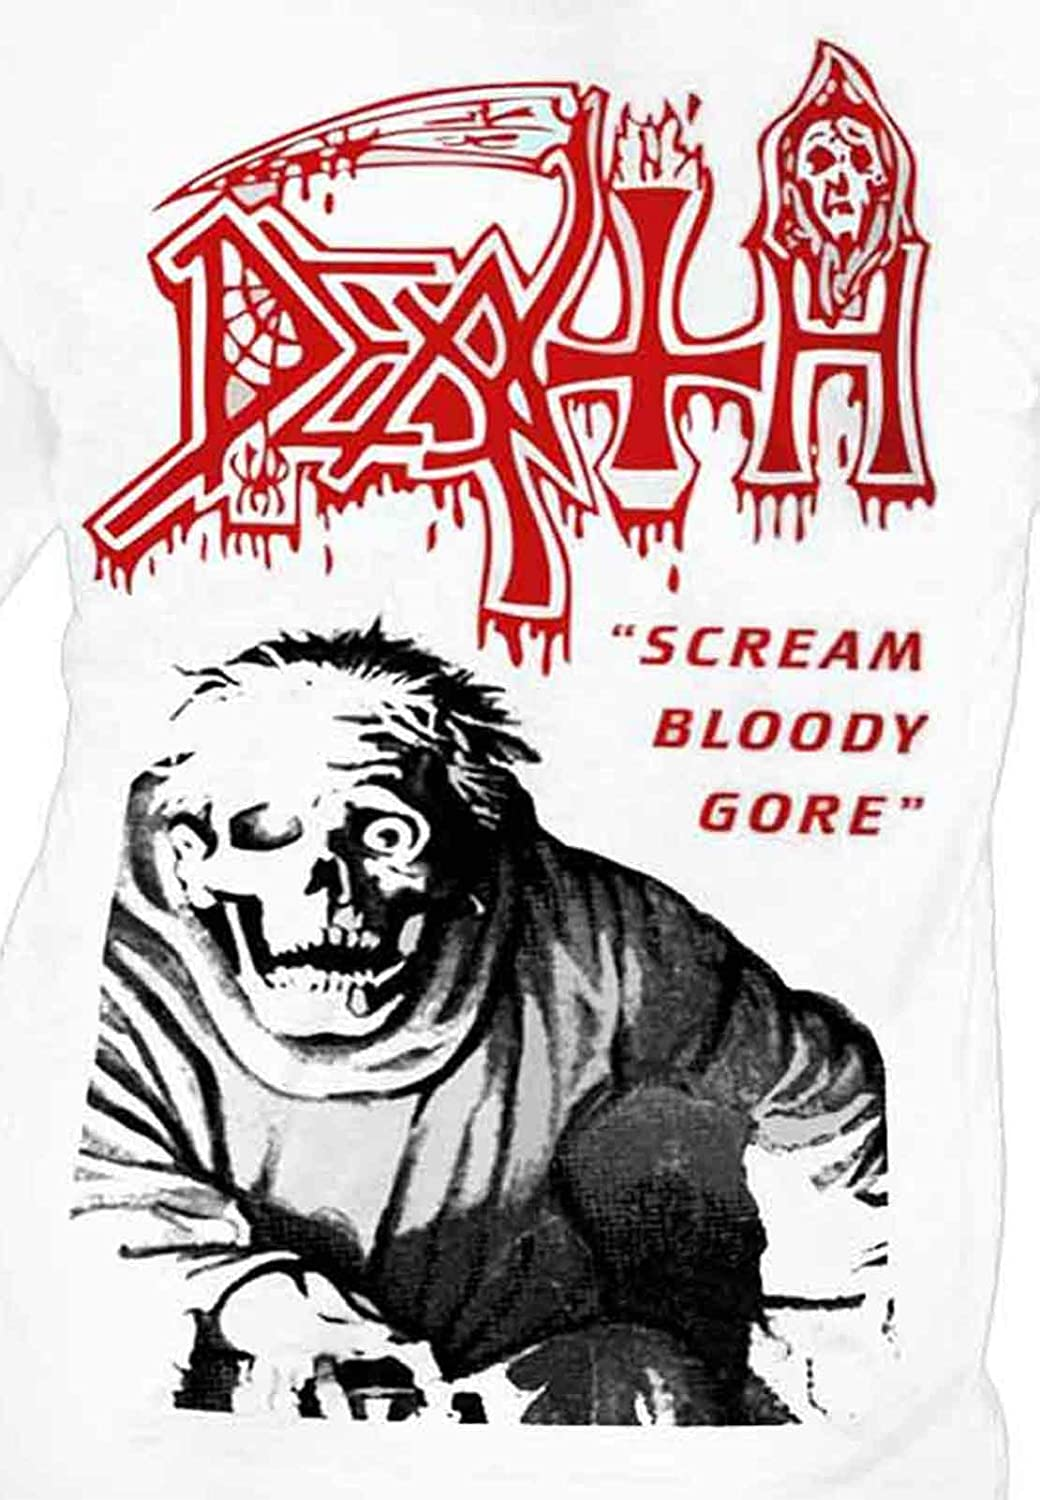 b9a8b54f4bbbde Amazon.com  Death  Scream Bloody Gore  (White) Long Sleeve Shirt -  Ultrakult Clothing (small)  Clothing